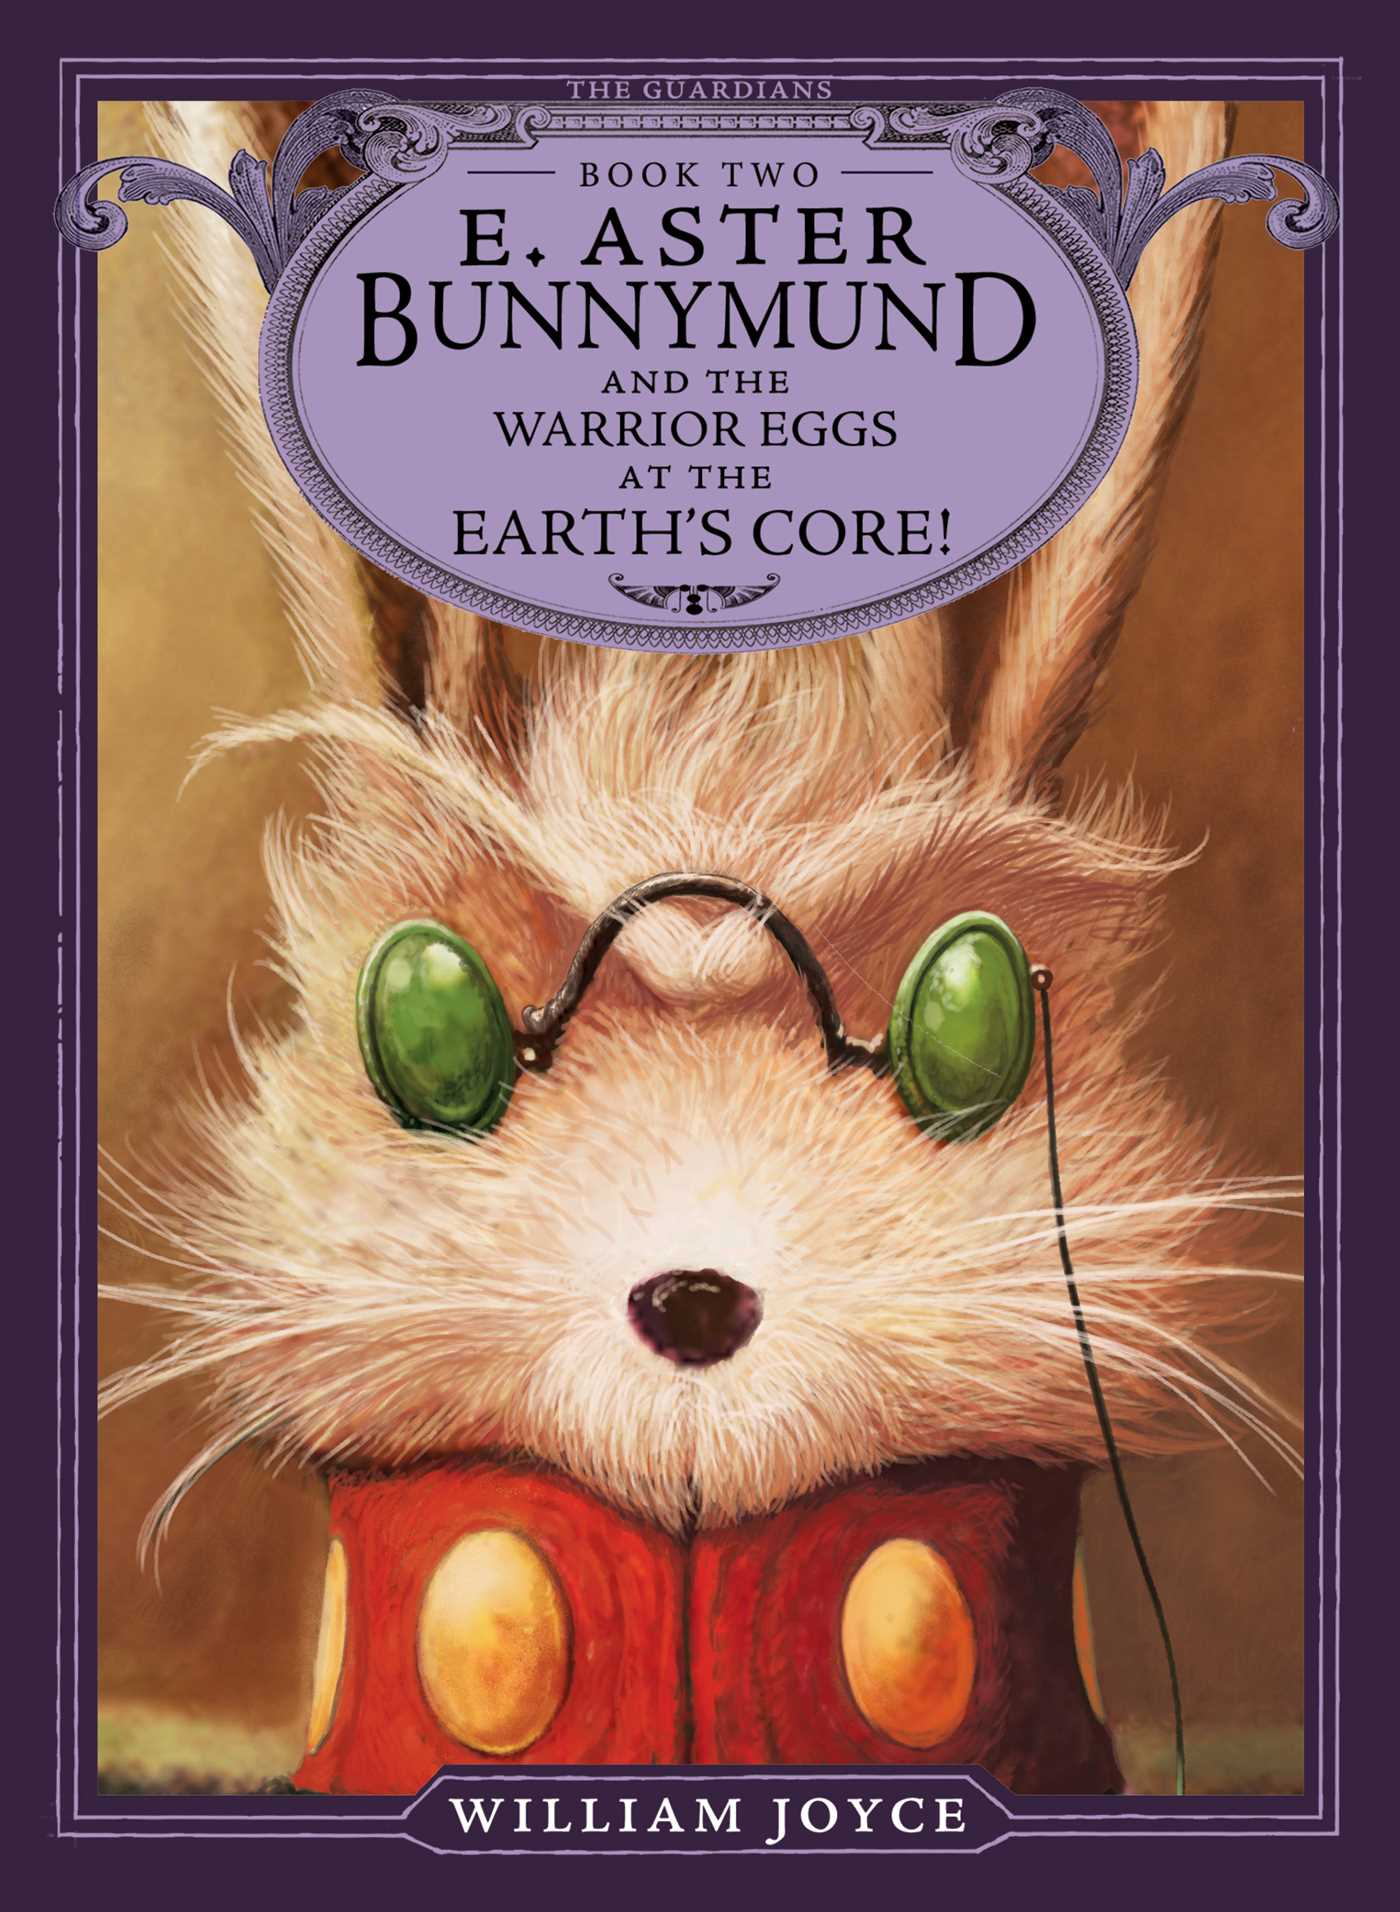 E aster bunnymund and the warrior eggs at the earths core 9781442430518 hr